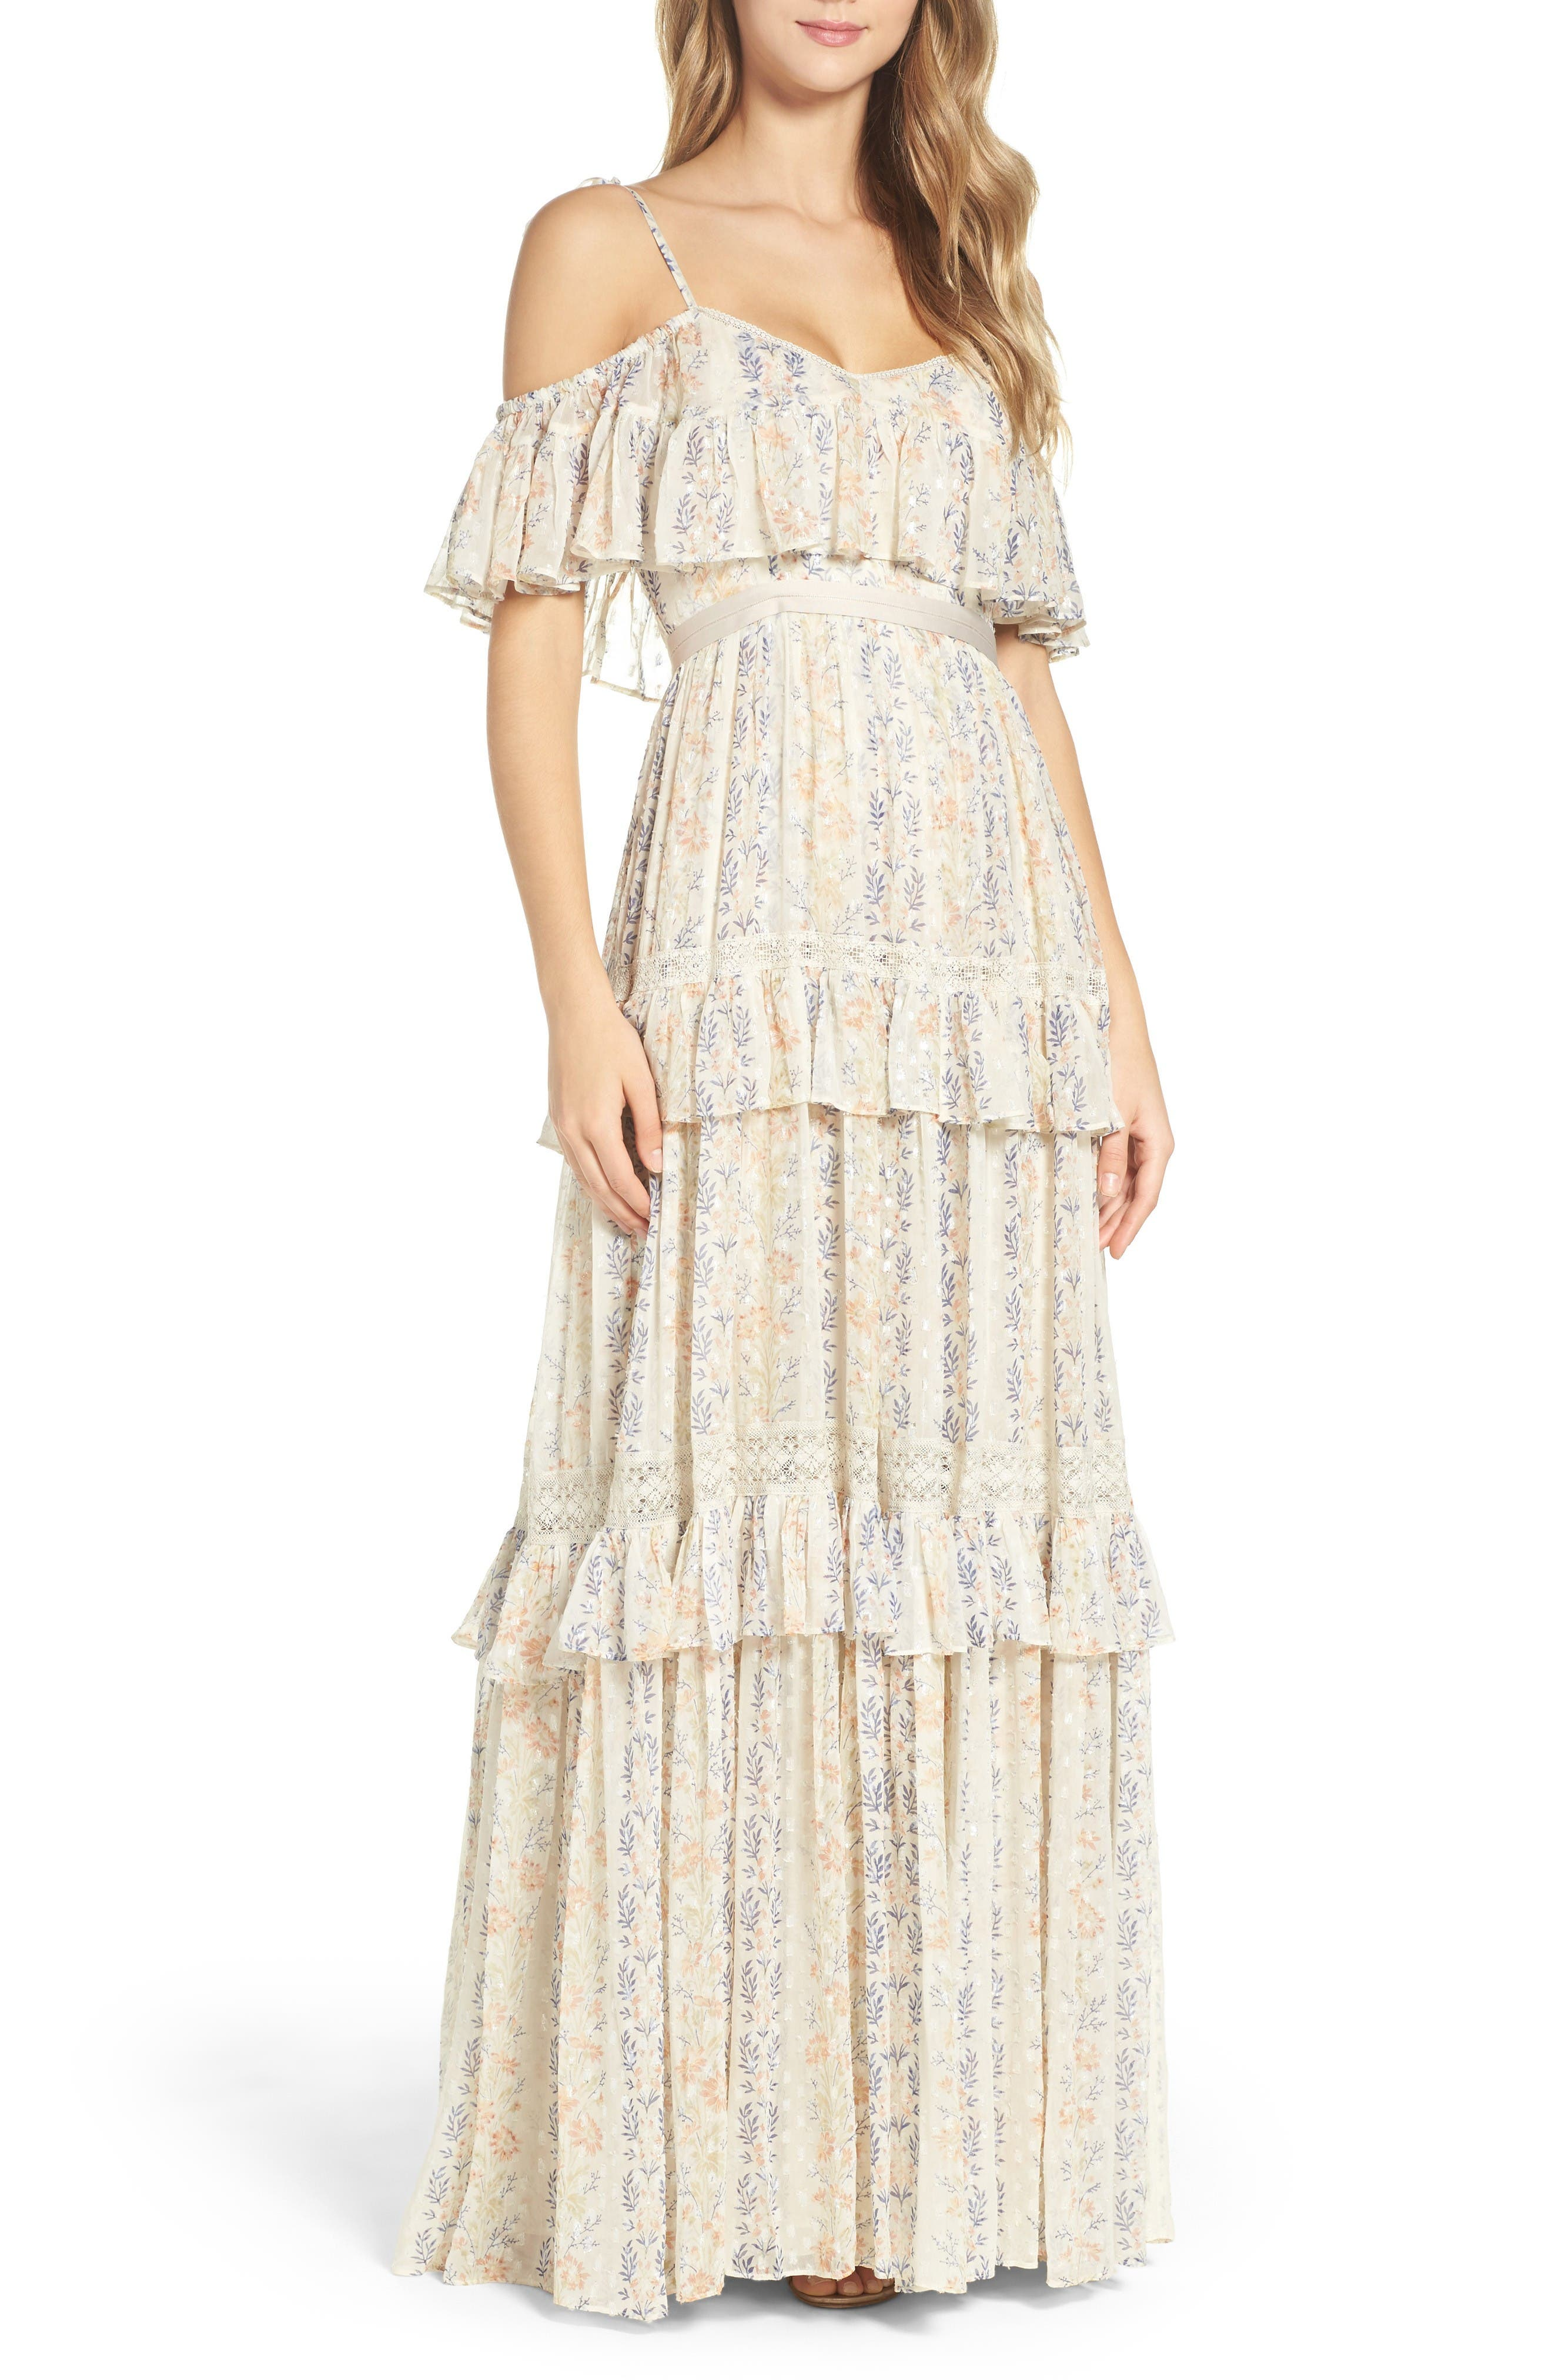 Alternate Image 1 Selected - Needle & Thread Cold Shoulder Tiered Gown